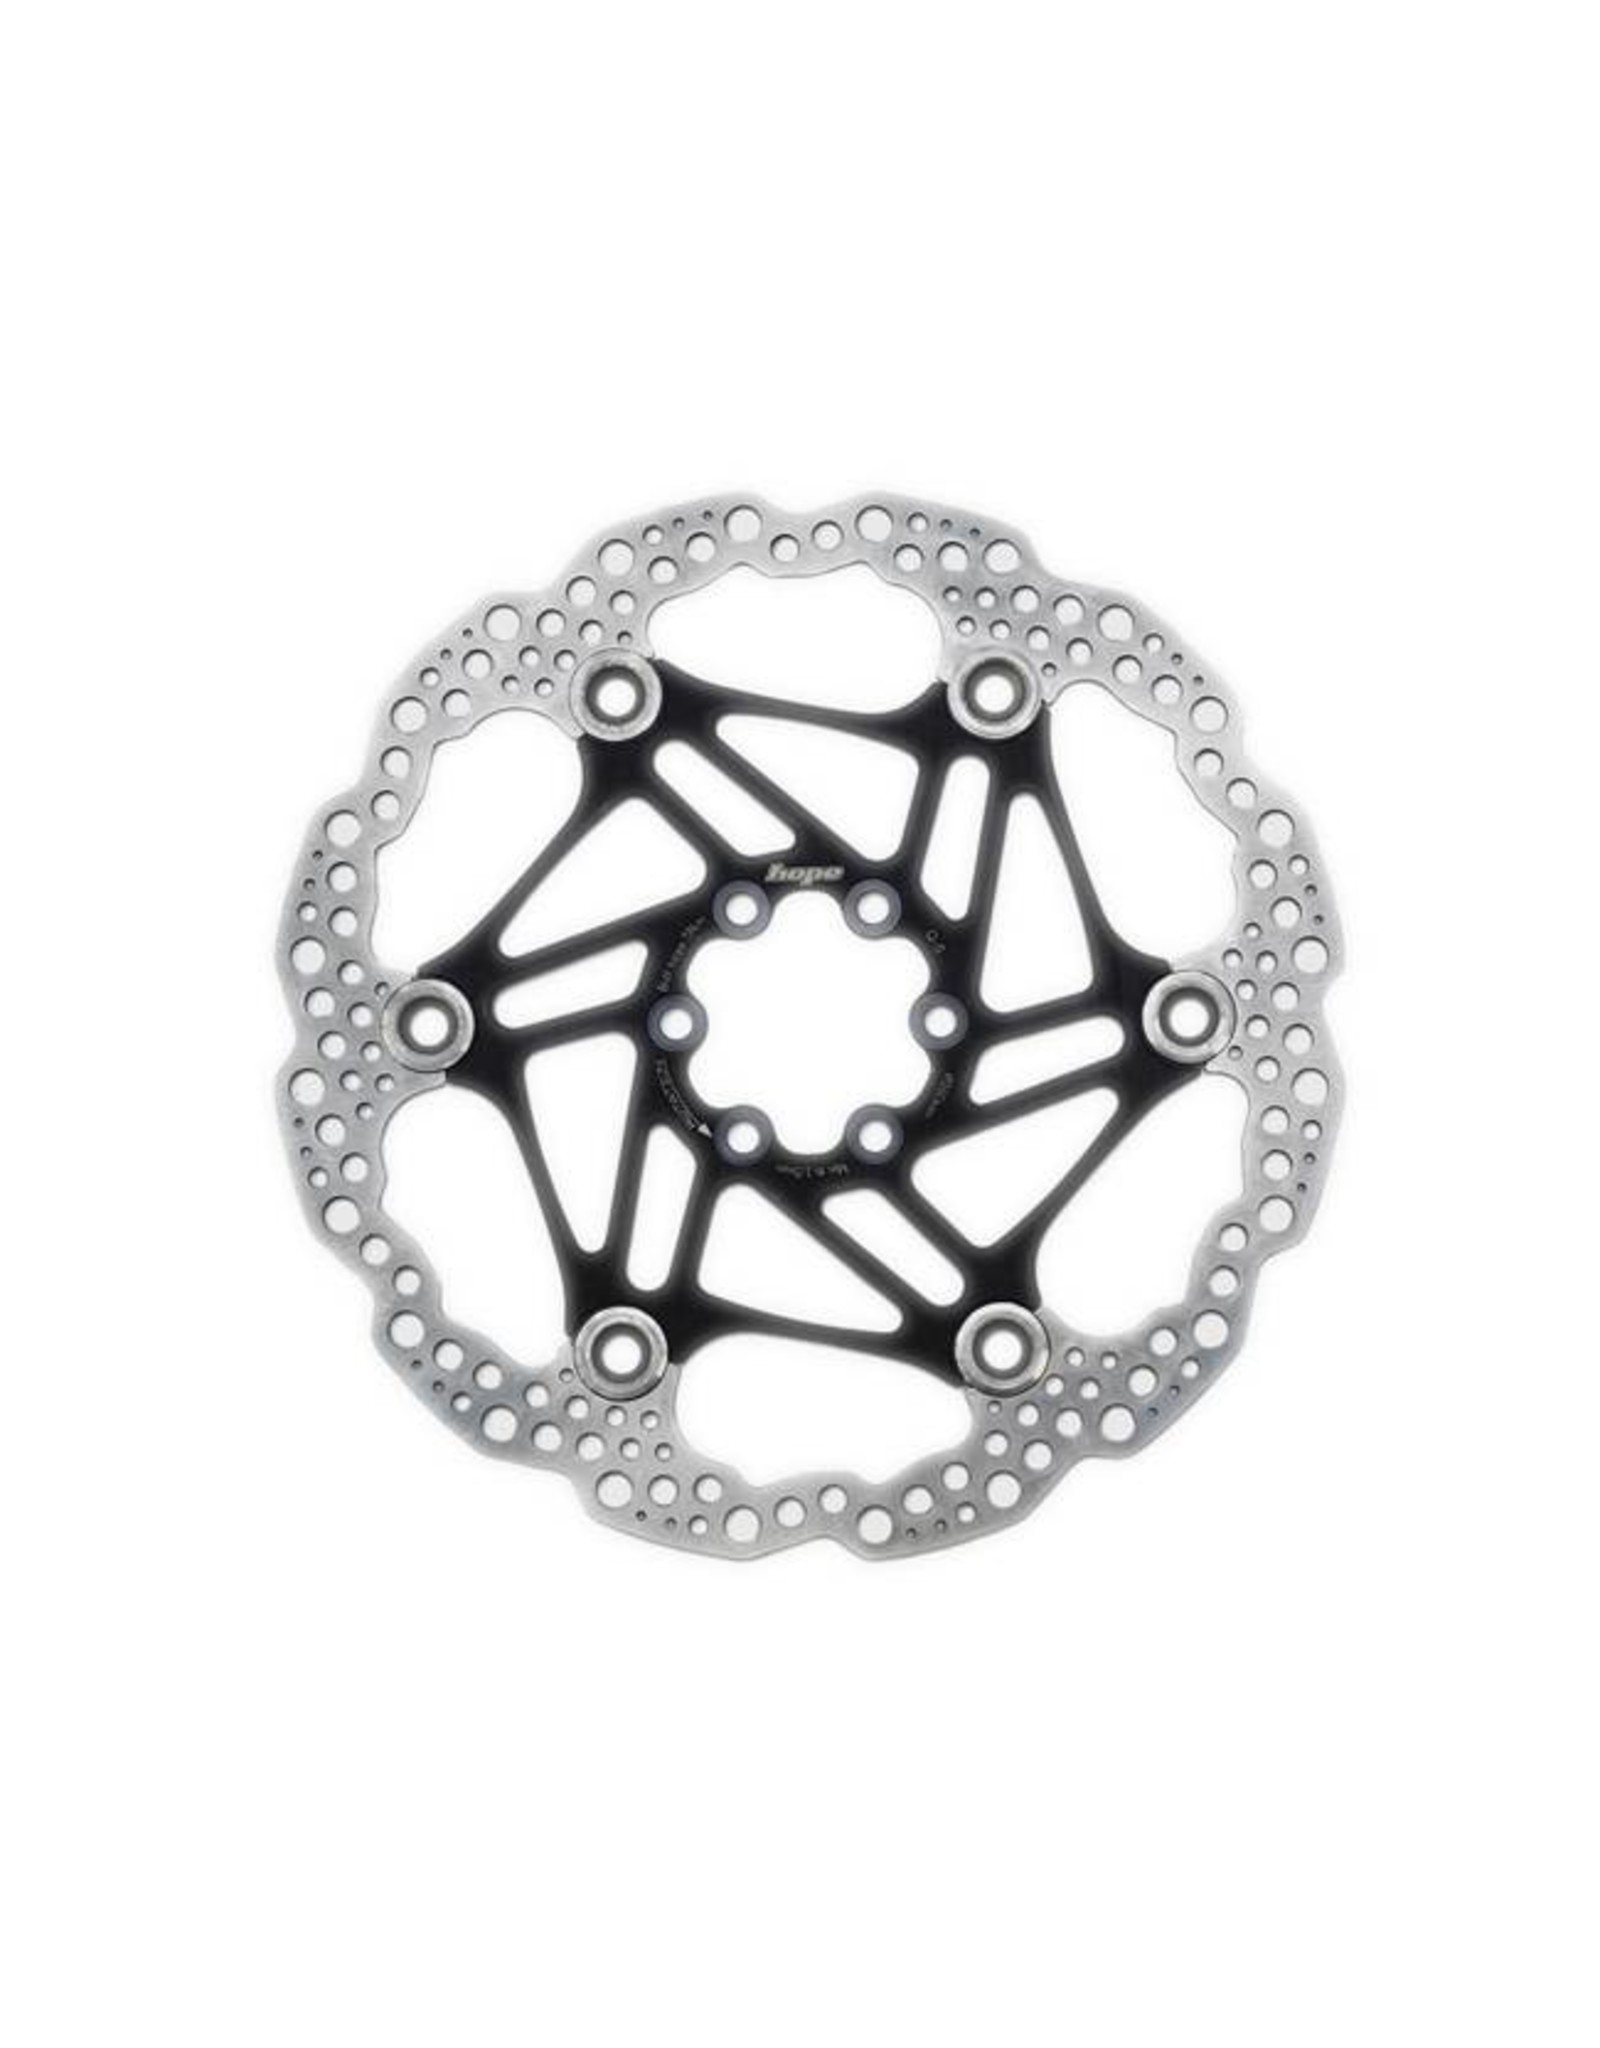 Hope Hope Floating Disc Rotor: 180mm Black